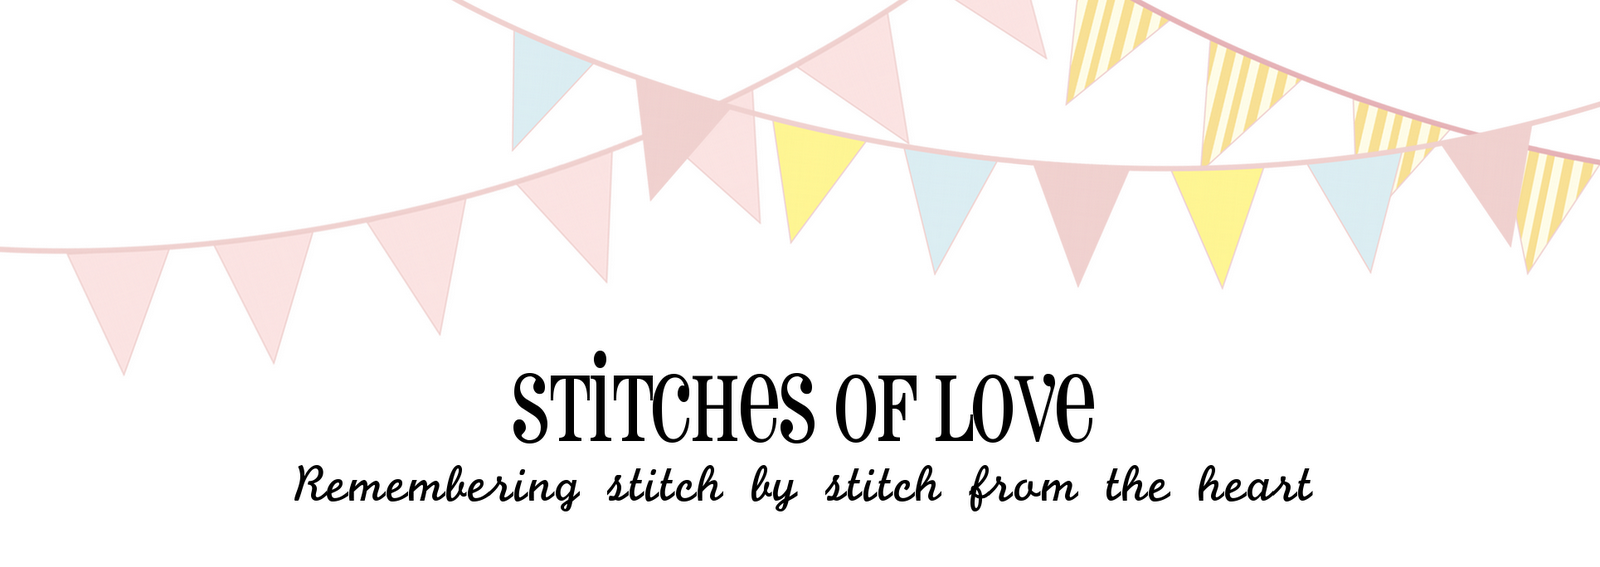 Stitches of Love